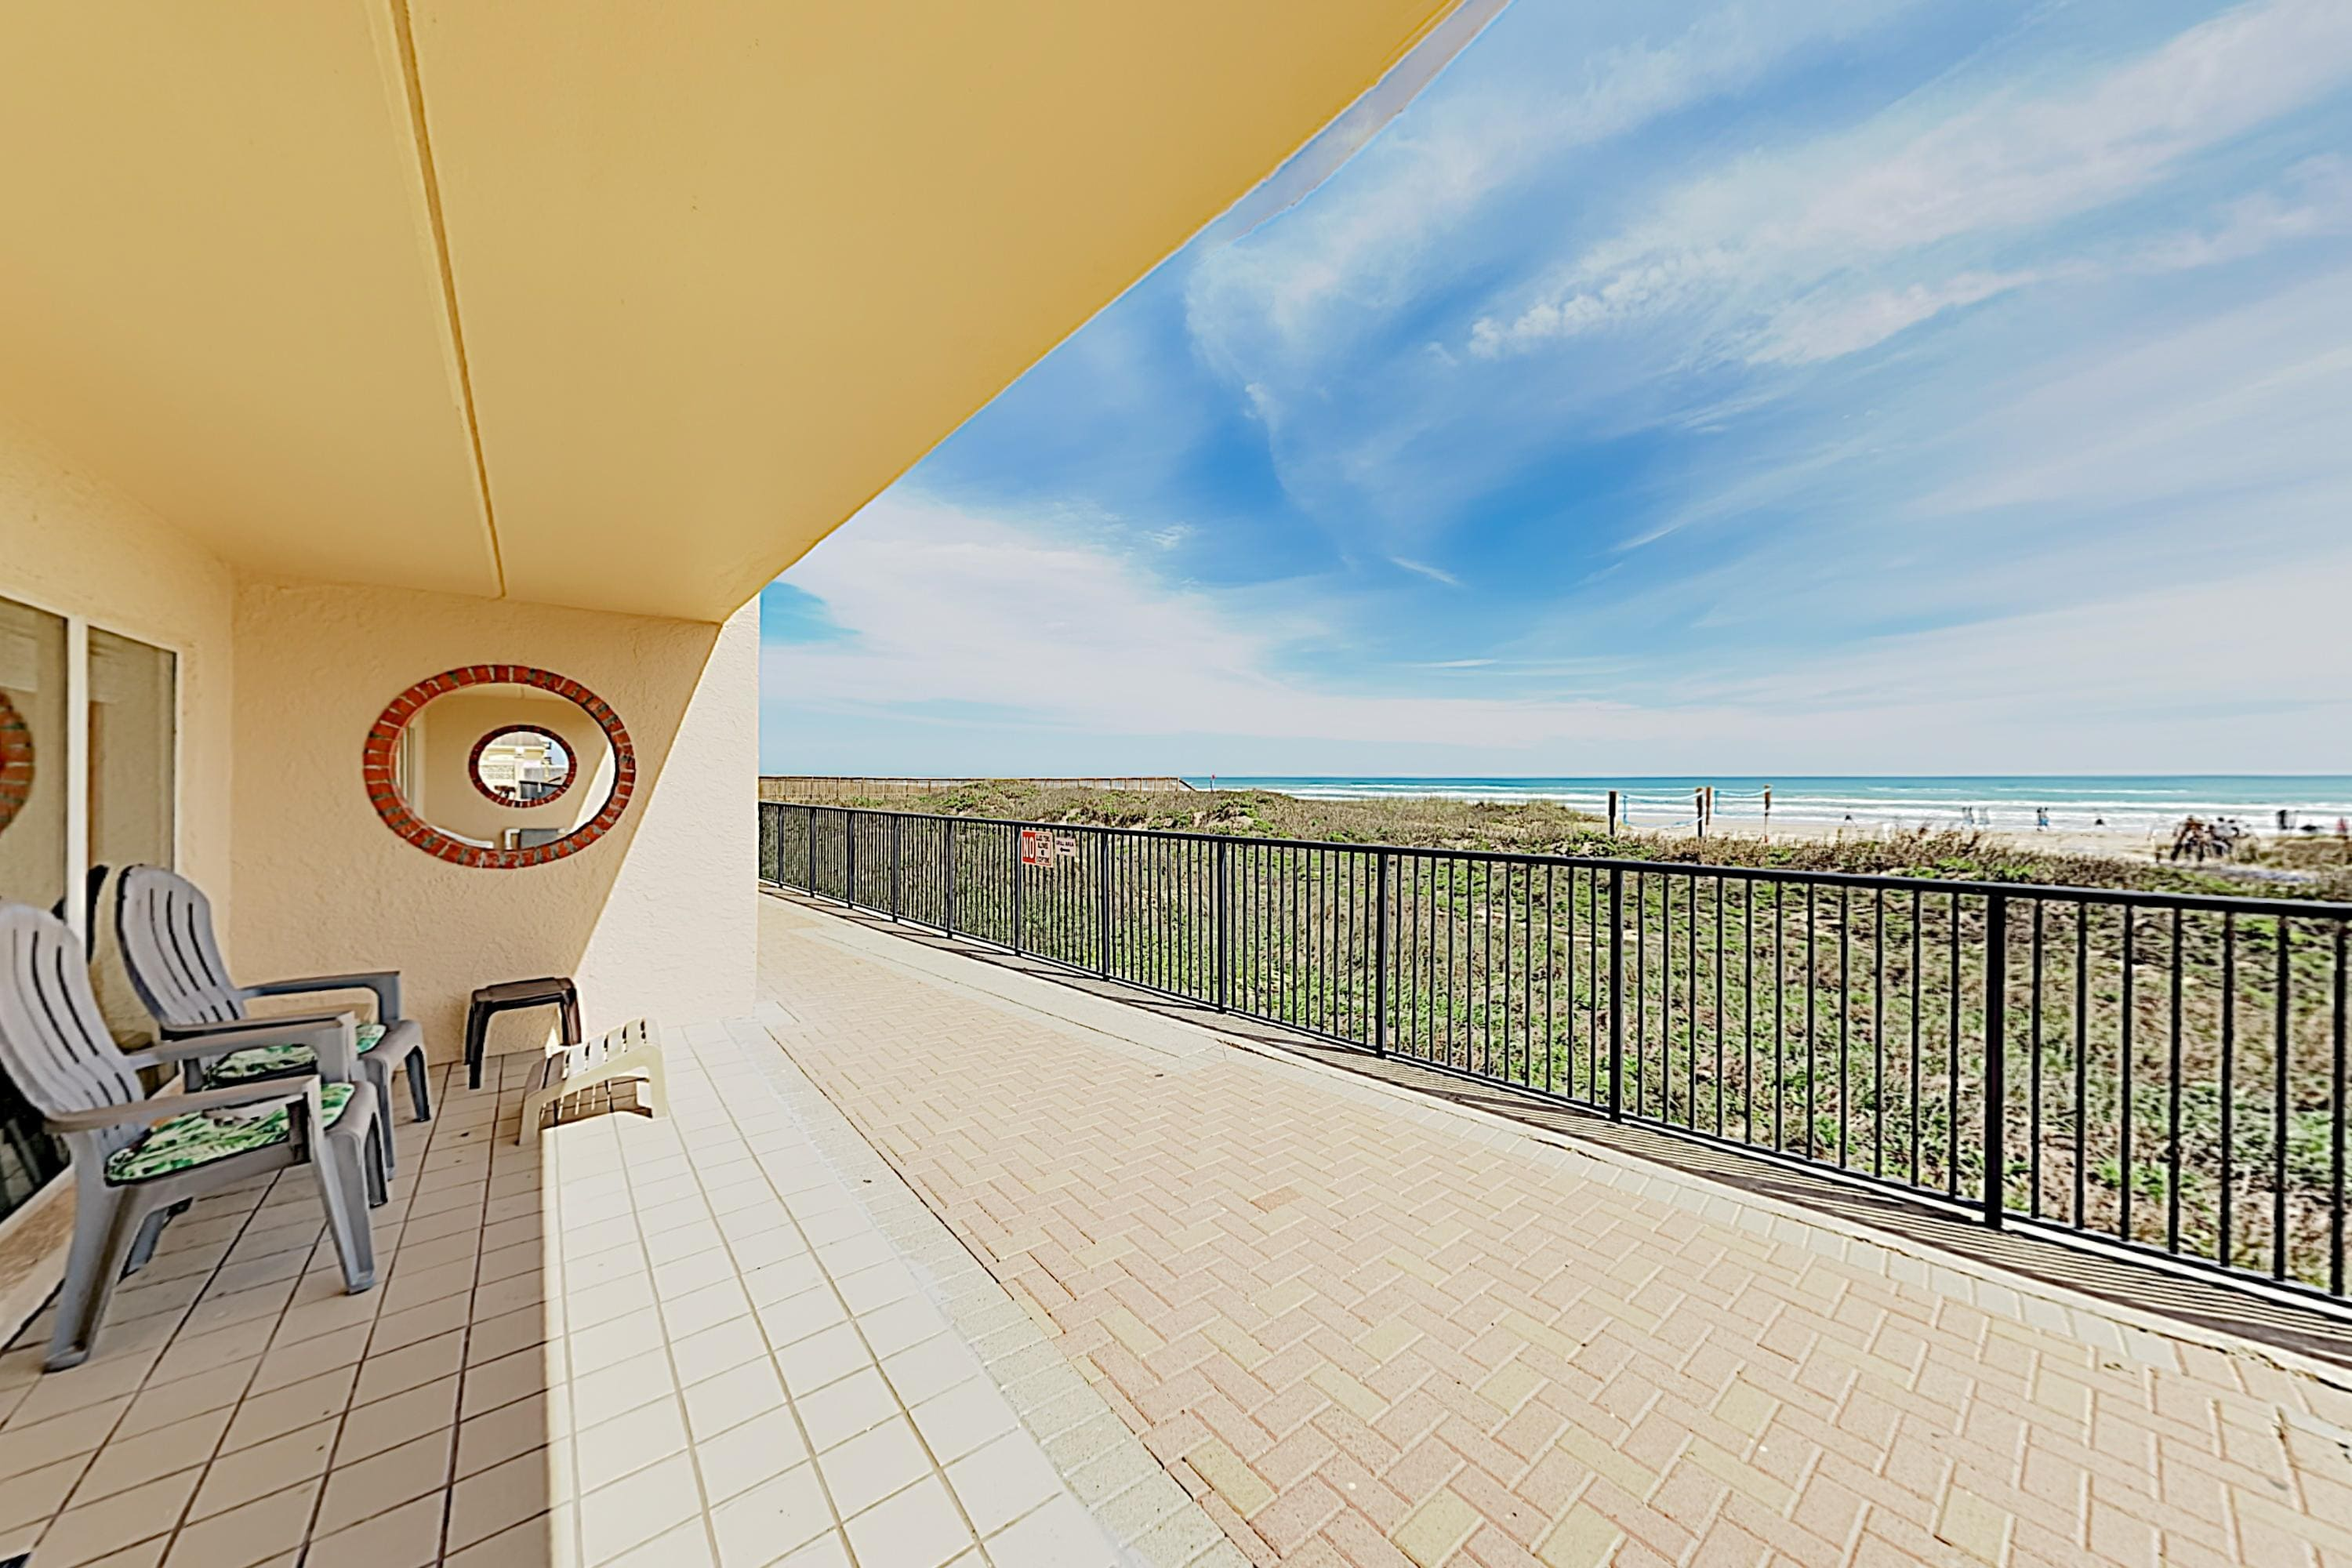 Welcome to South Padre! This condo is professionally managed by TurnKey Vacation Rentals.